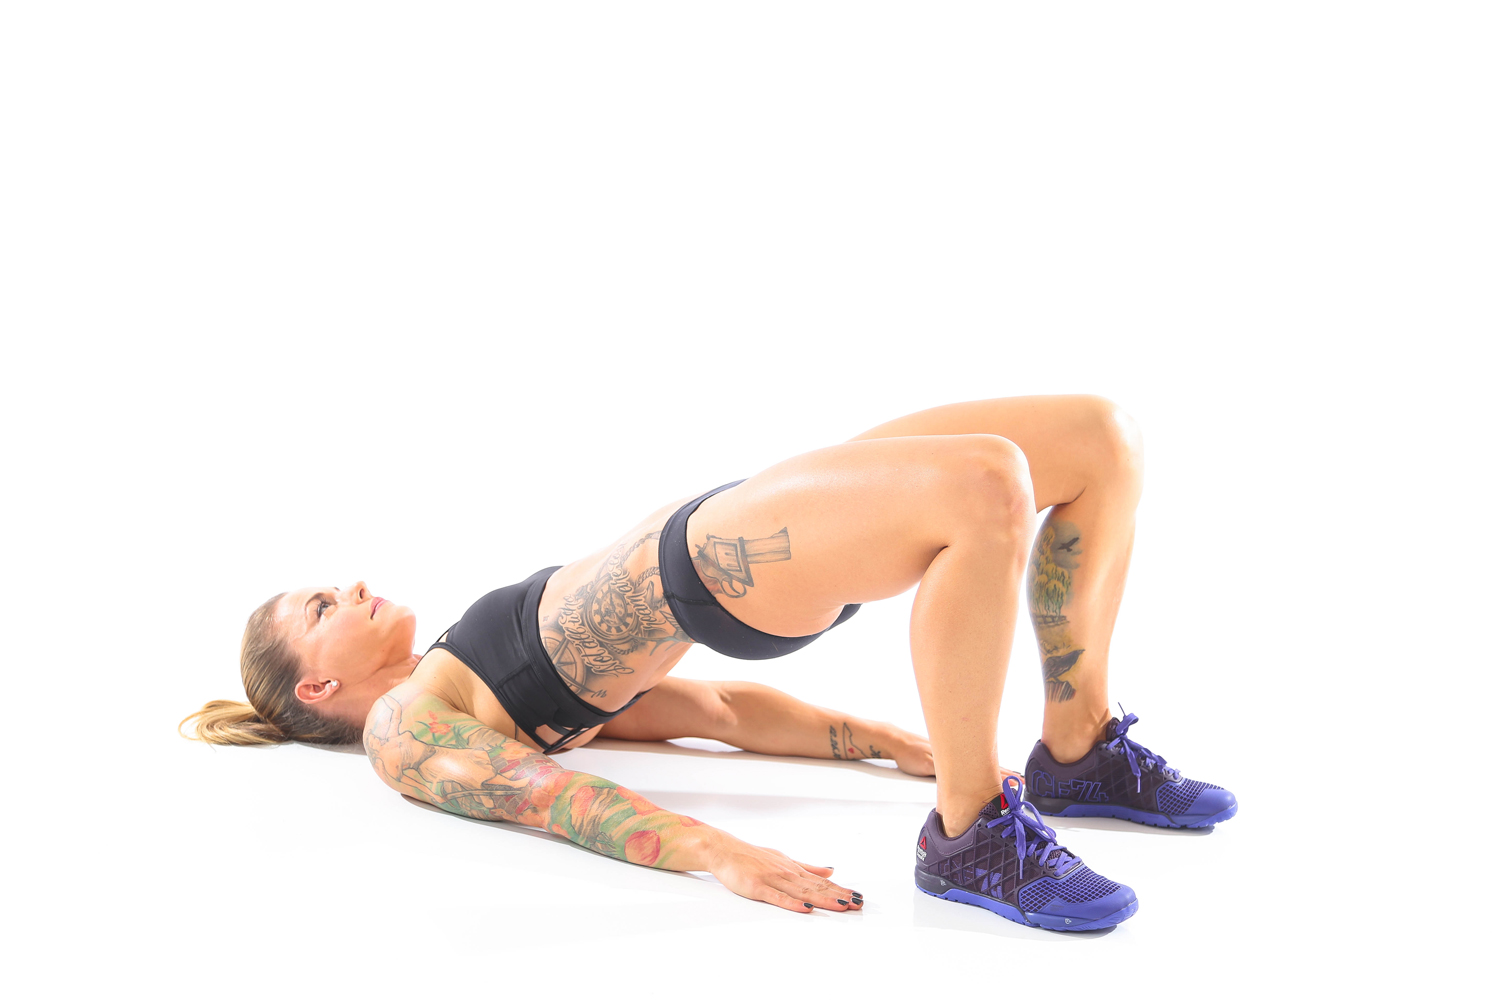 From The Badass Body Diet, by Christmas Abbott: Sky Humpers, Part 2